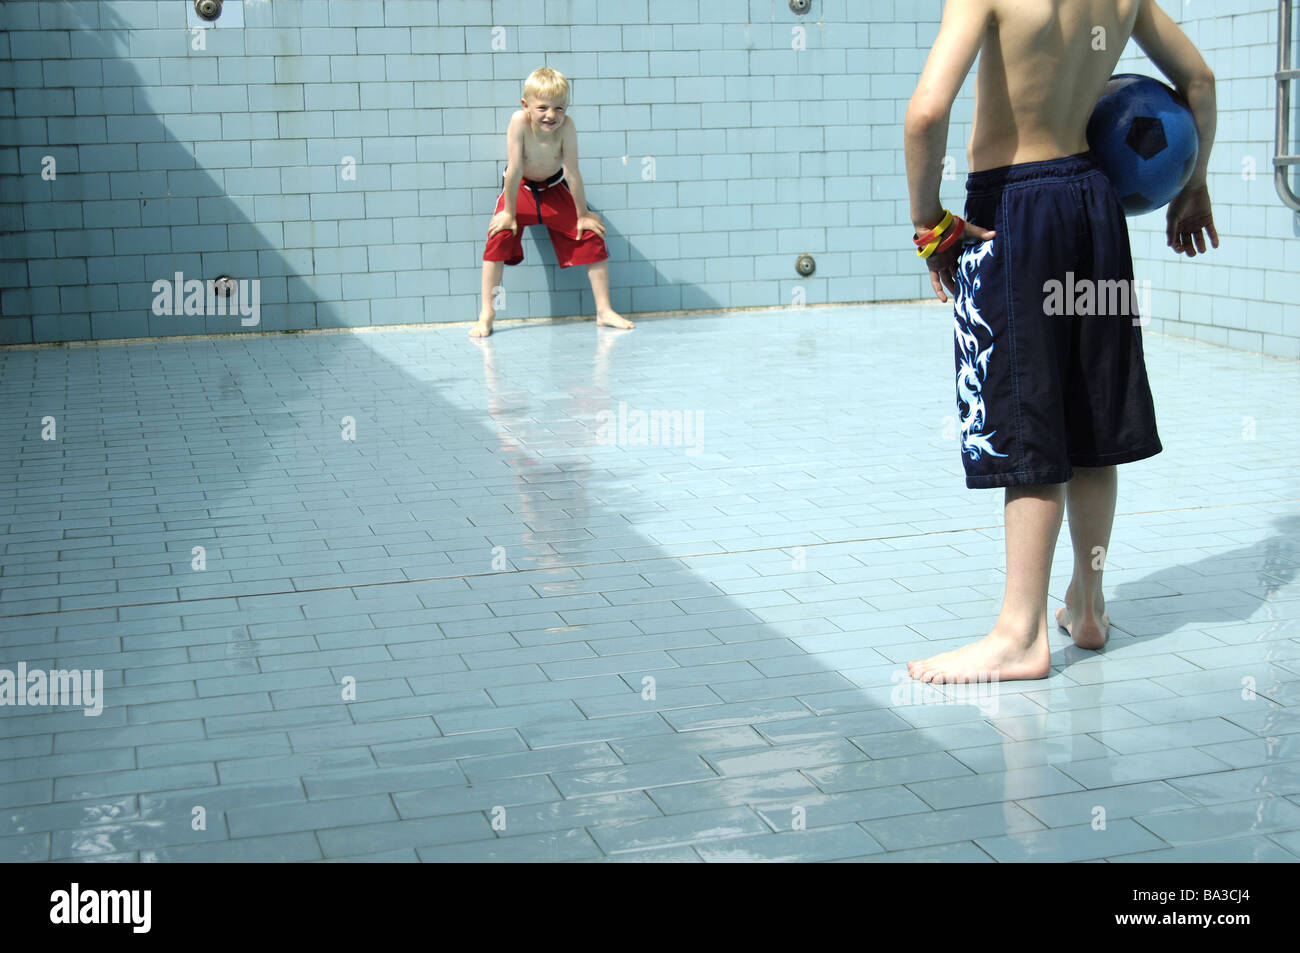 Pool empty children soccer games detail series people boys bath-clothing pools basin-ground tiles ball ball-game - Stock Image